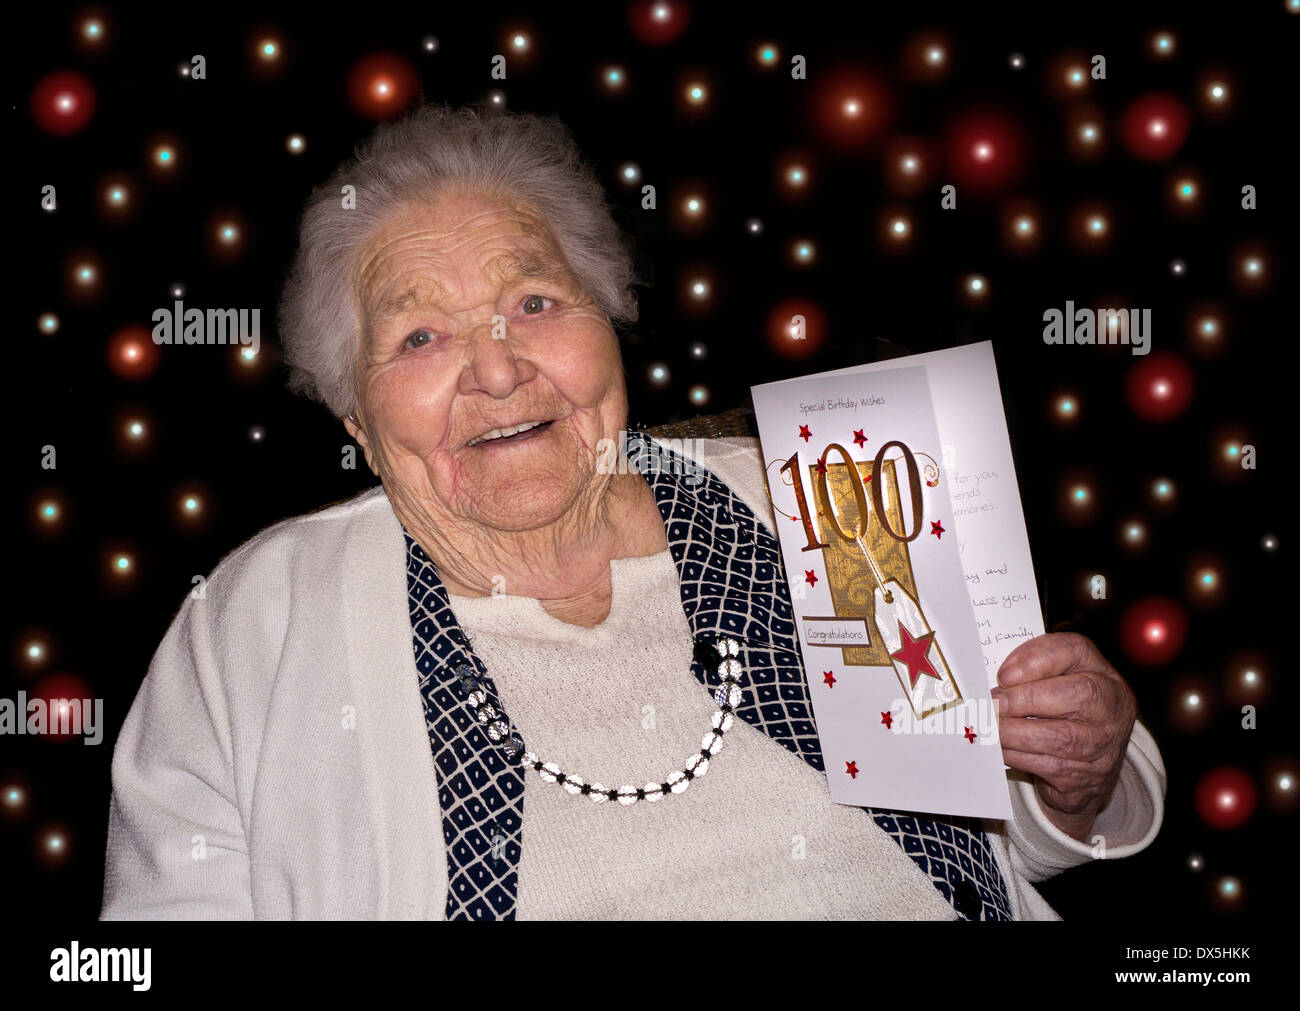 Happy alert elderly lady at 100 years of age holding a '100' congratulatory birthday card with 100 party lights behind - Stock Image